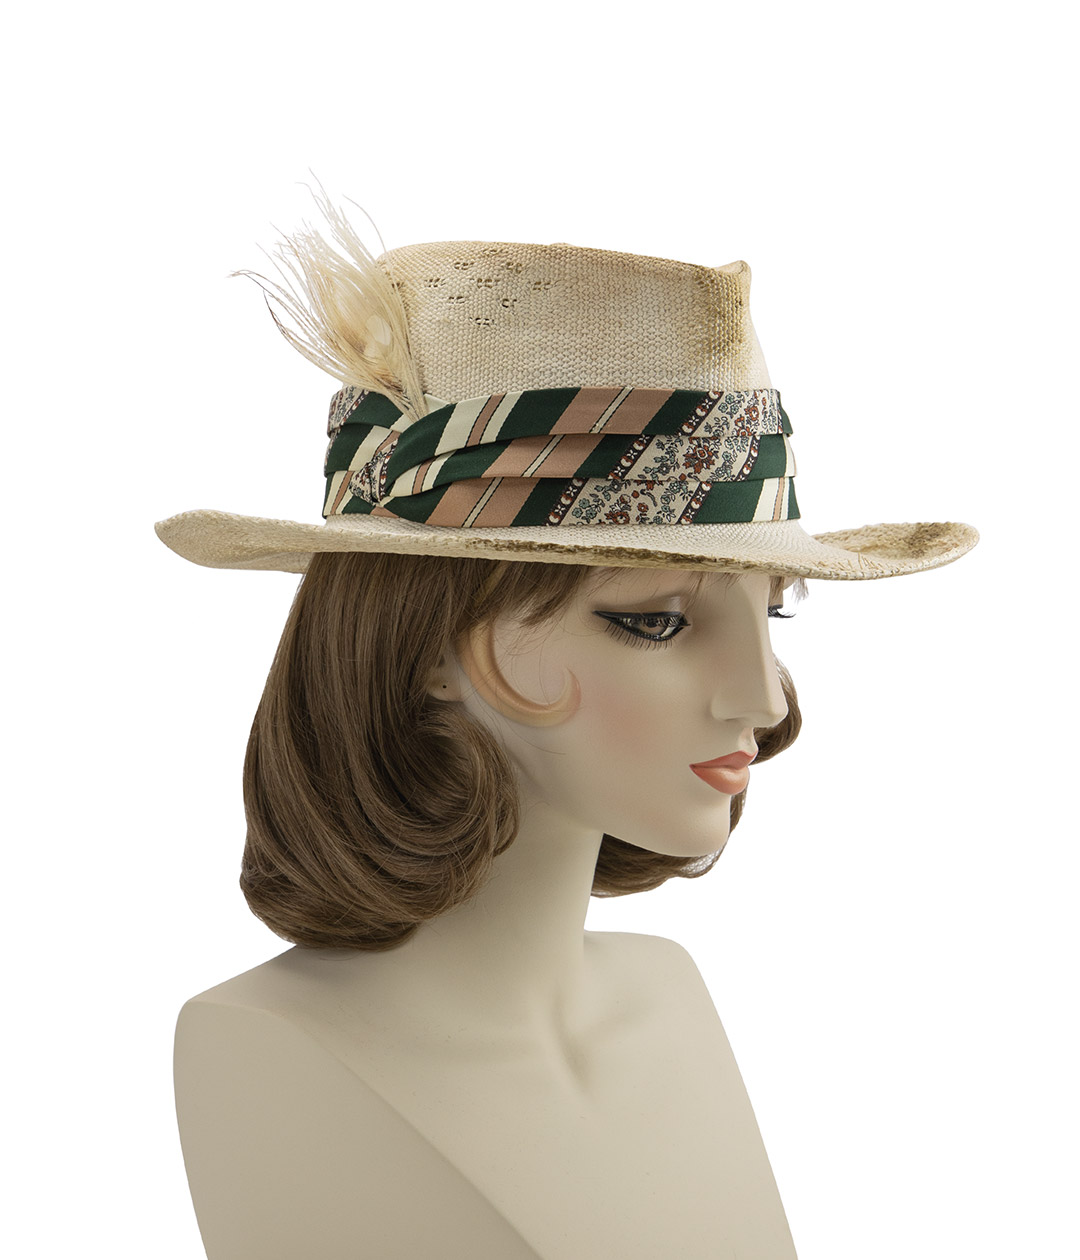 Shabby chic cowboy hat displayed on mannequin head.